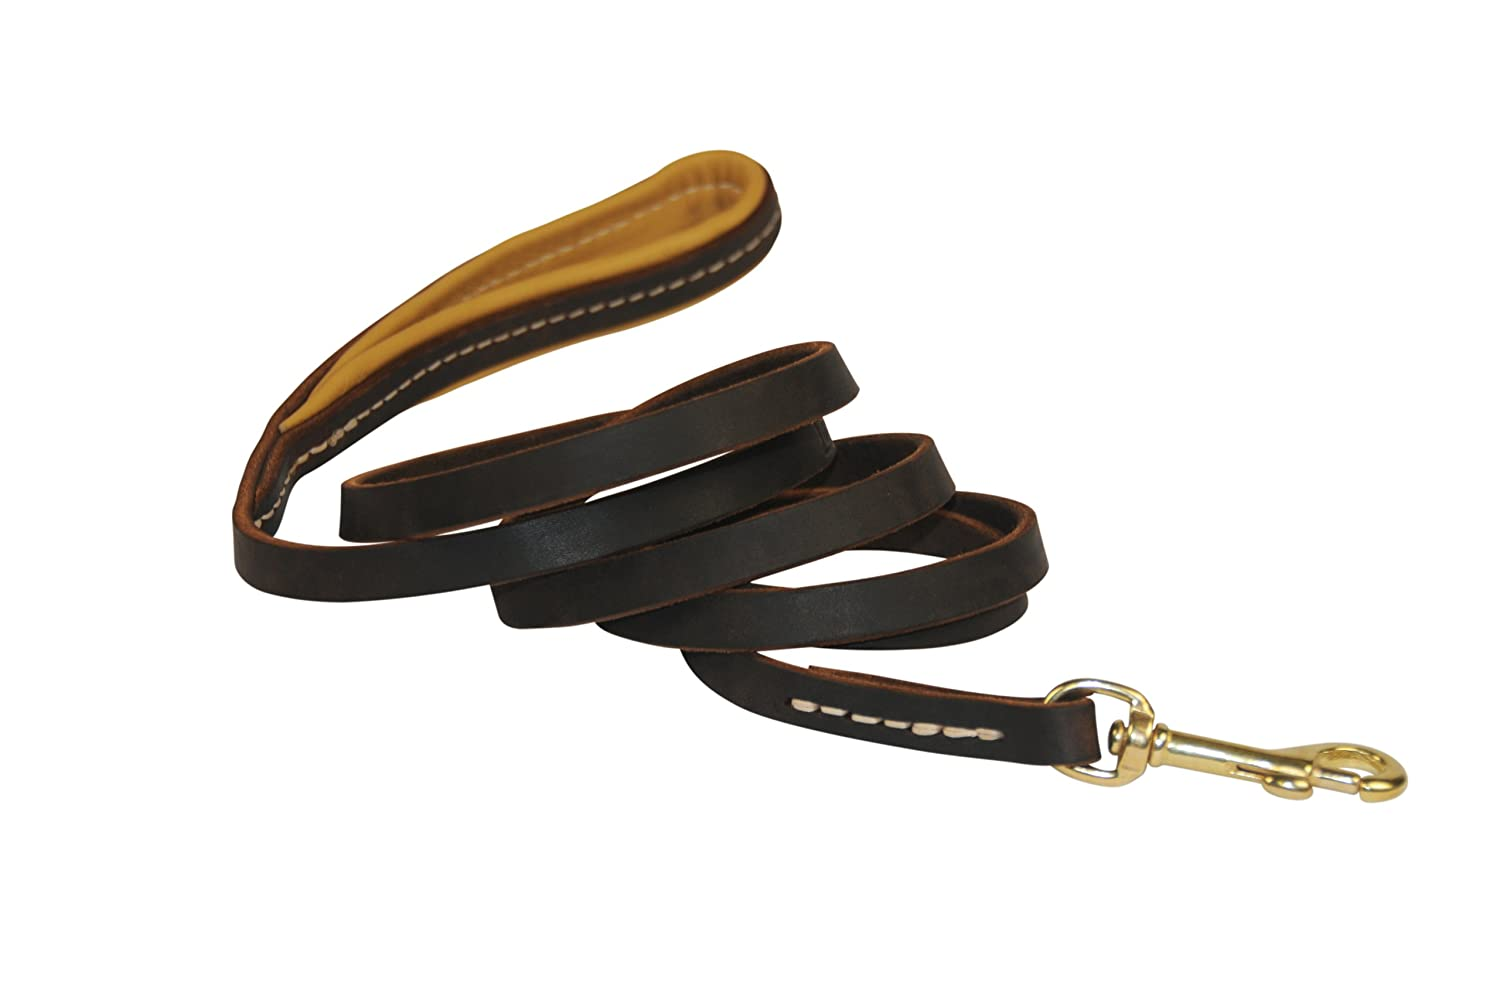 Dean & Tyler Soft Touch Dog Leash, 2-Feet by 1 2-Inch Width with Padded Handle and Solid Brass Snap Hook, Brown